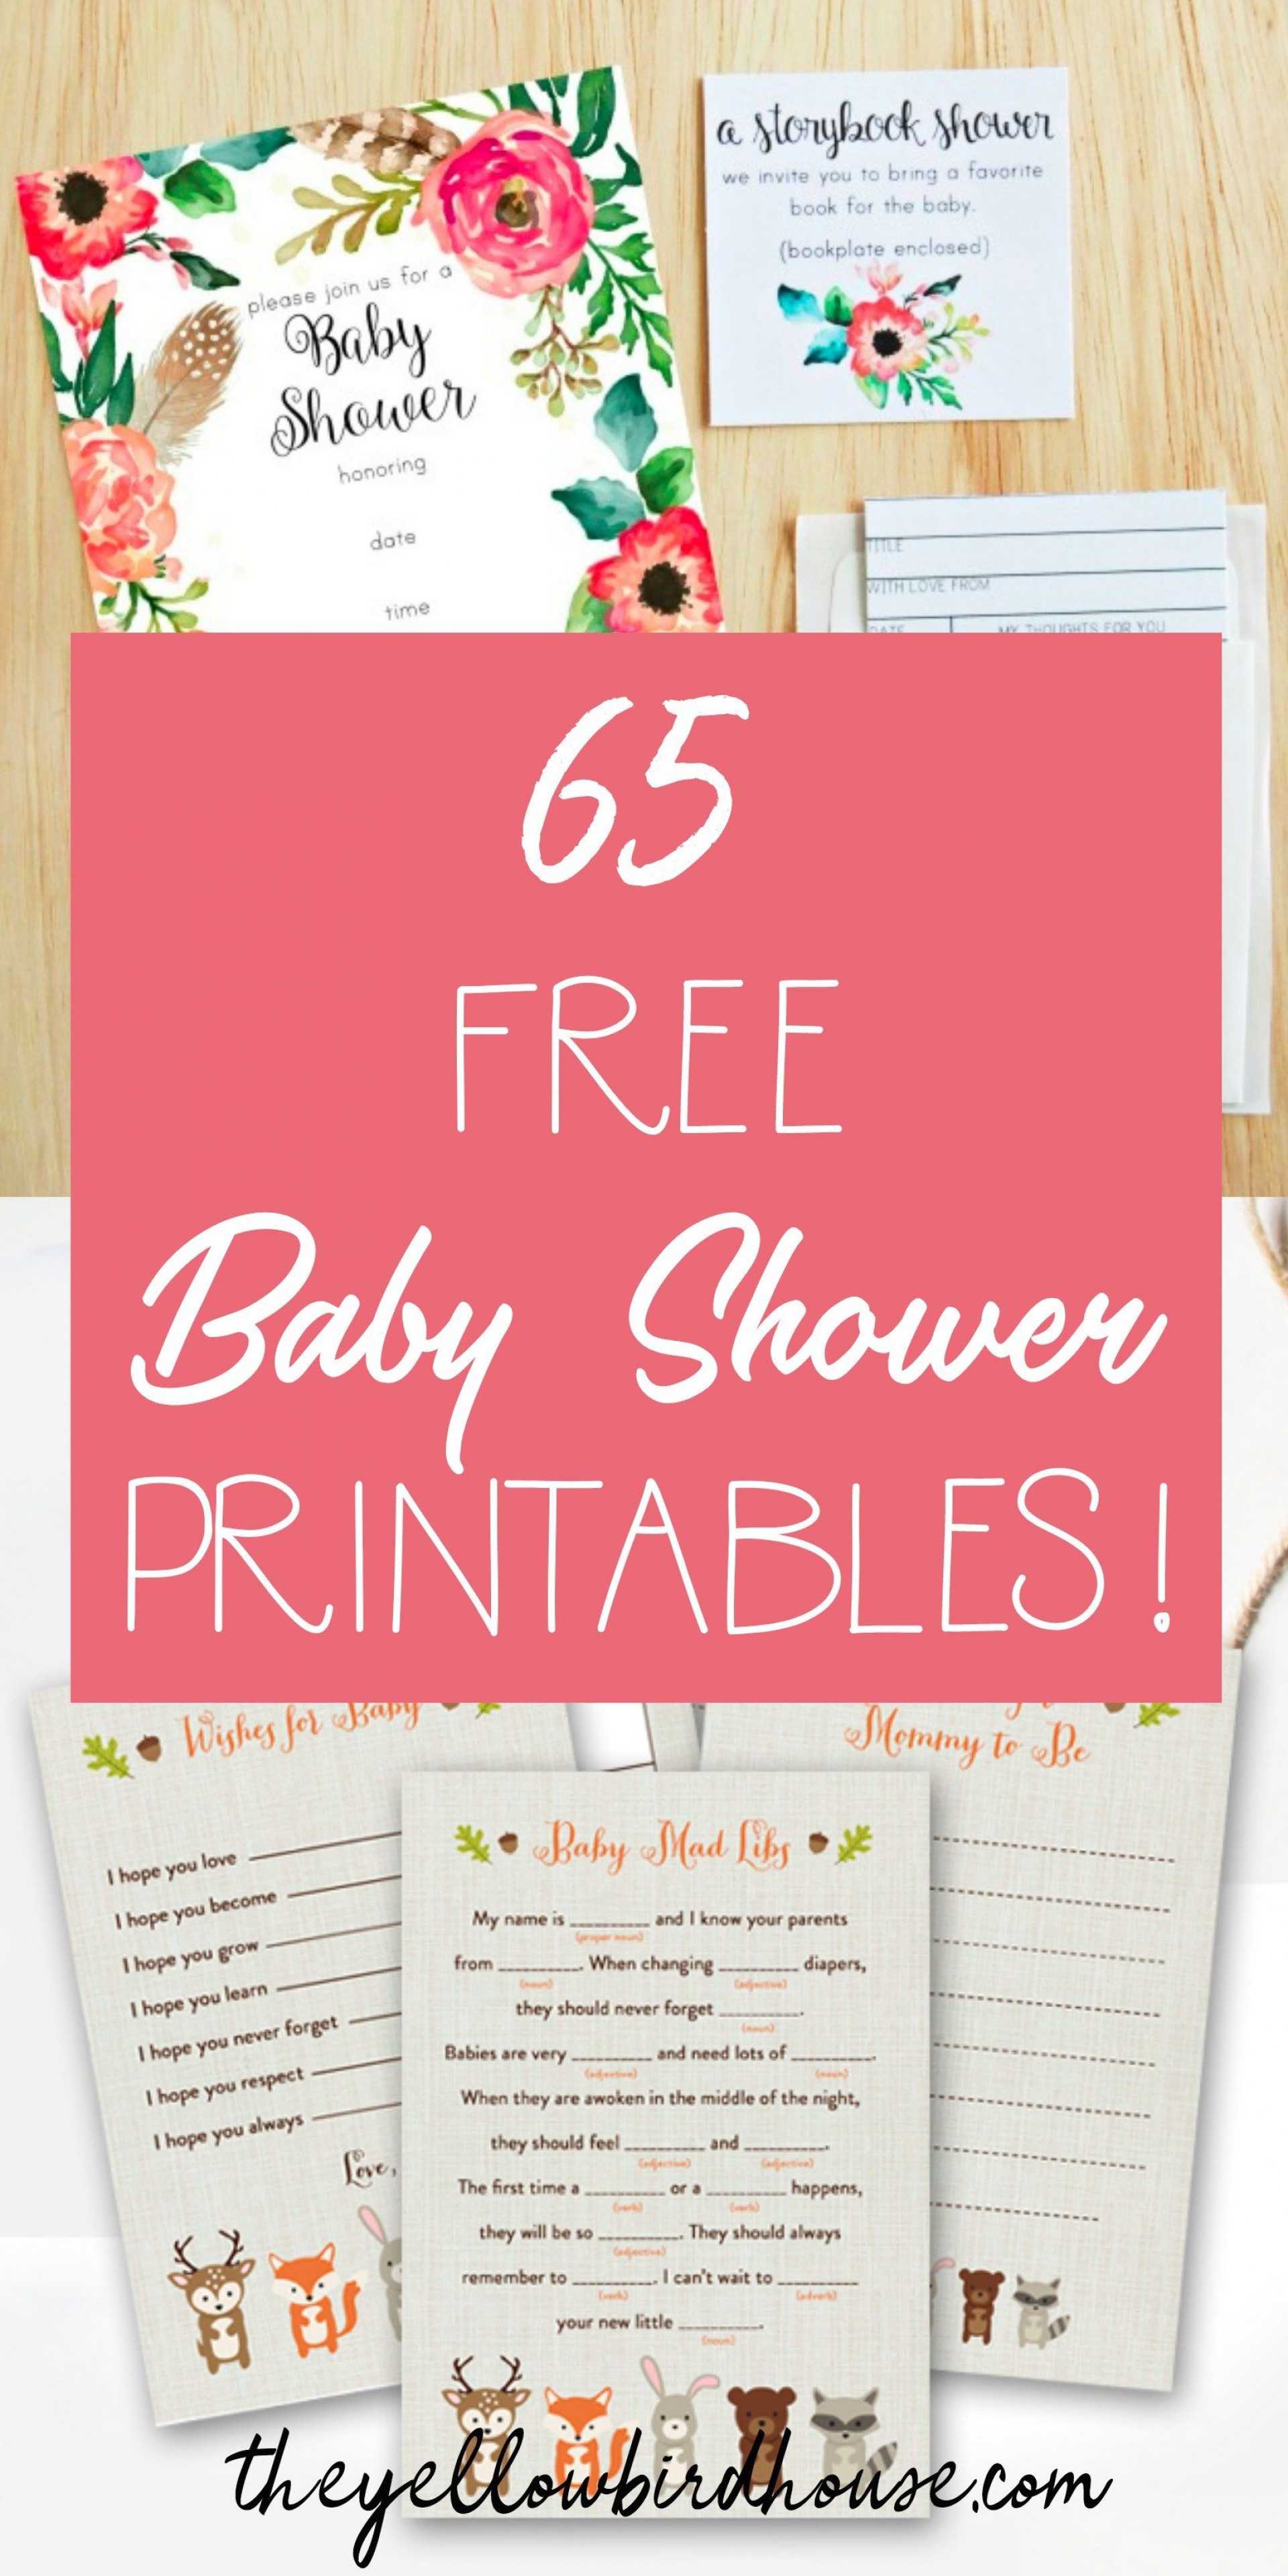 008 Sensational Free Girl Elephant Baby Shower Printable Concept  Printables1920